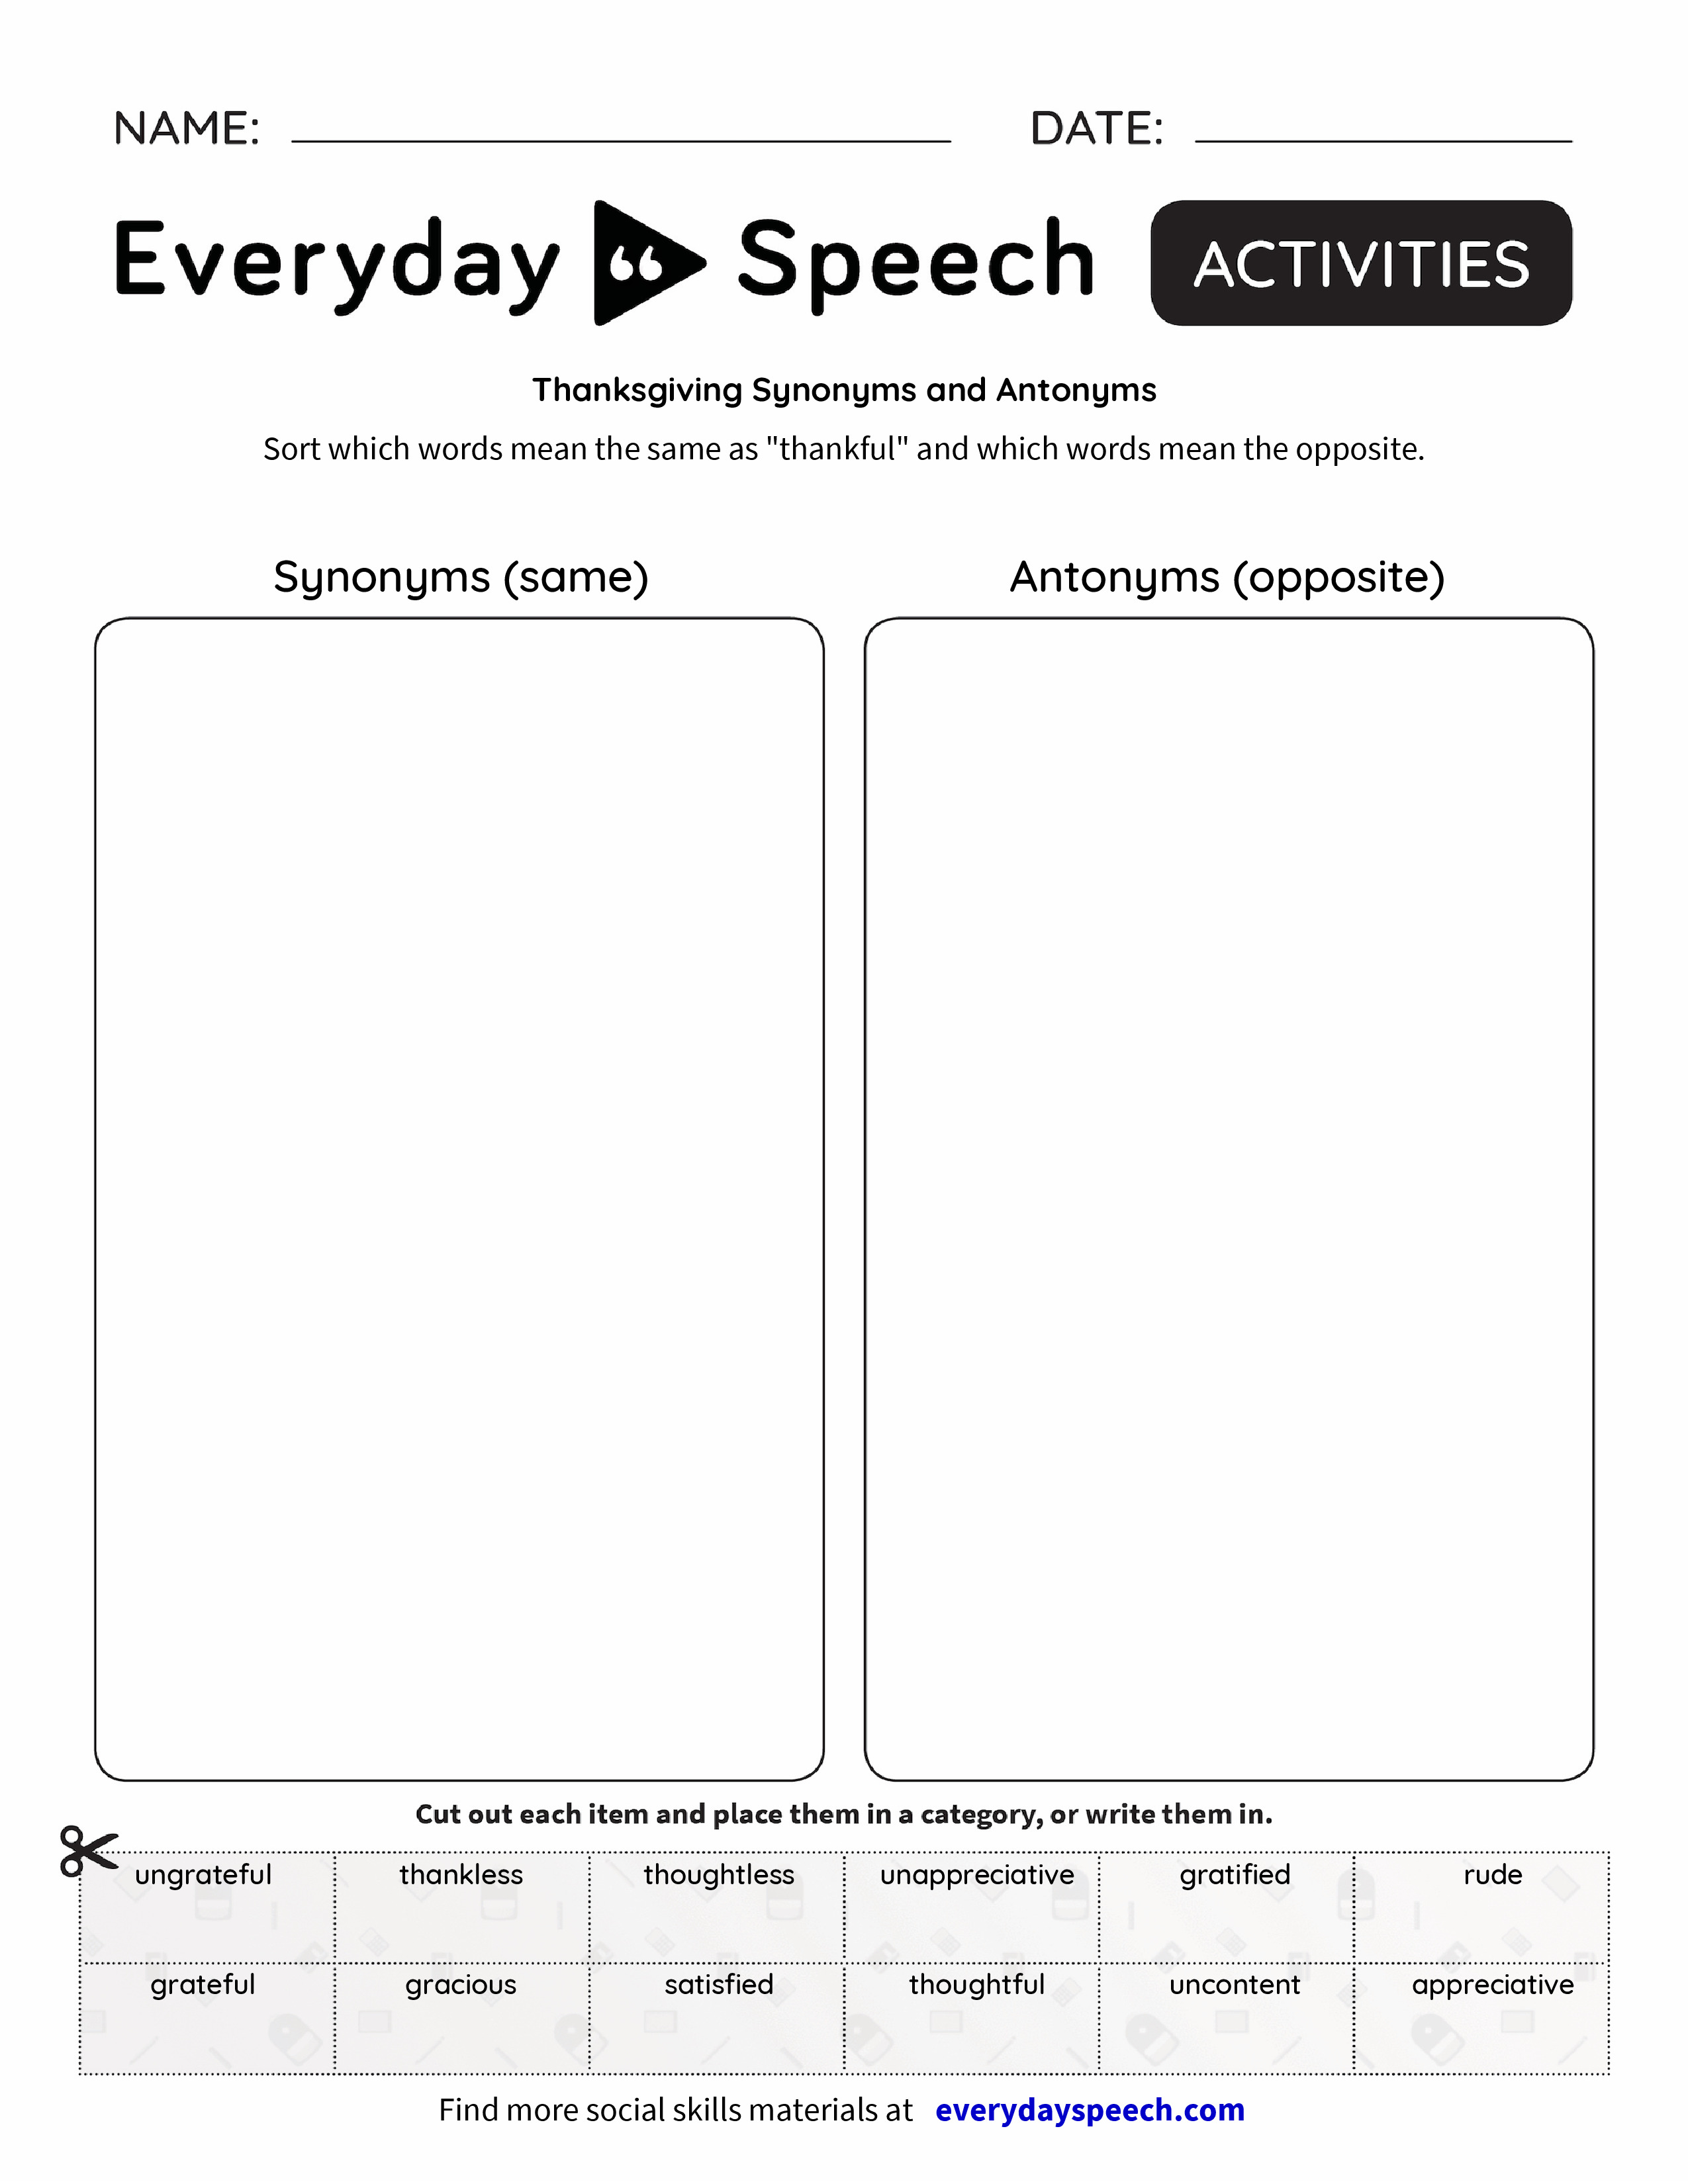 Free Synonyms and Antonyms Worksheets  Language Arts also  together with Antonyms Worksheets   Learning Synonyms and Antonyms Worksheet furthermore Thanksgiving Synonyms and Antonyms   Everyday Sch   Everyday Sch moreover Synonyms and Antonyms Worksheets  Advanced  by Deb Hanson   TpT likewise Synonyms and Antonyms Worksheet   Activity Sheet   strawberries likewise  furthermore Vocabulary Worksheets   Synonym and Antonym Worksheets moreover Matching Synonyms and Antonyms Worksheets   K5 Learning further  also Education   Antonyms Worksheet   Teaching Ideas   Pinterest in addition Synonyms and Antonyms Worksheet by Brittney Marie   TpT as well Antonyms Worksheets For Grade 1 besides  additionally 74 FREE ESL antonyms worksheets as well Synonyms and Antonyms Worksheets   K5 Learning. on worksheet on antonyms and synonyms